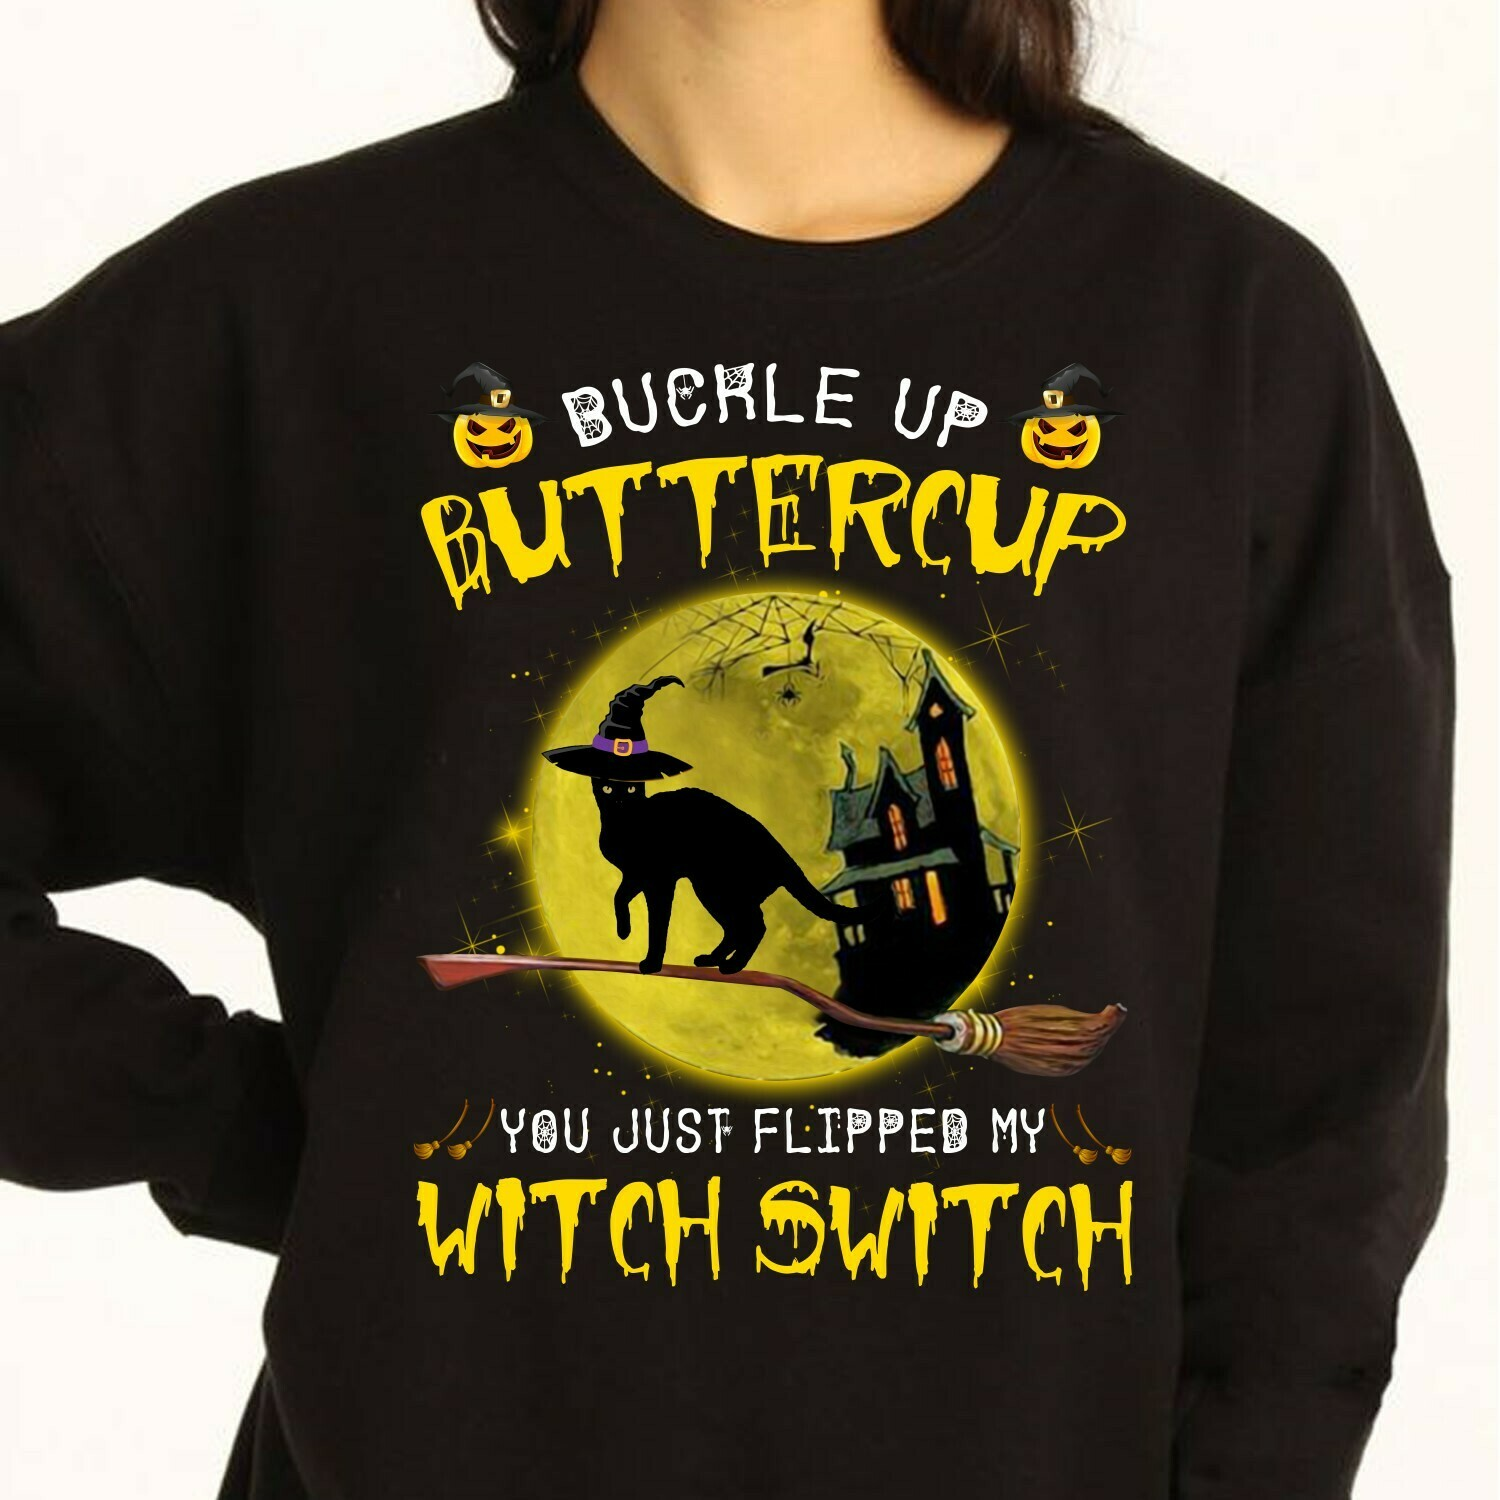 Black Cat Buckle Up Buttercup You Just Flipped My Witch Switch gift Lovers Halloween Day Family Vacation Team Party Gifts T-Shirt Long Sleeve Sweatshirt Hoodie Jolly Family Gifts